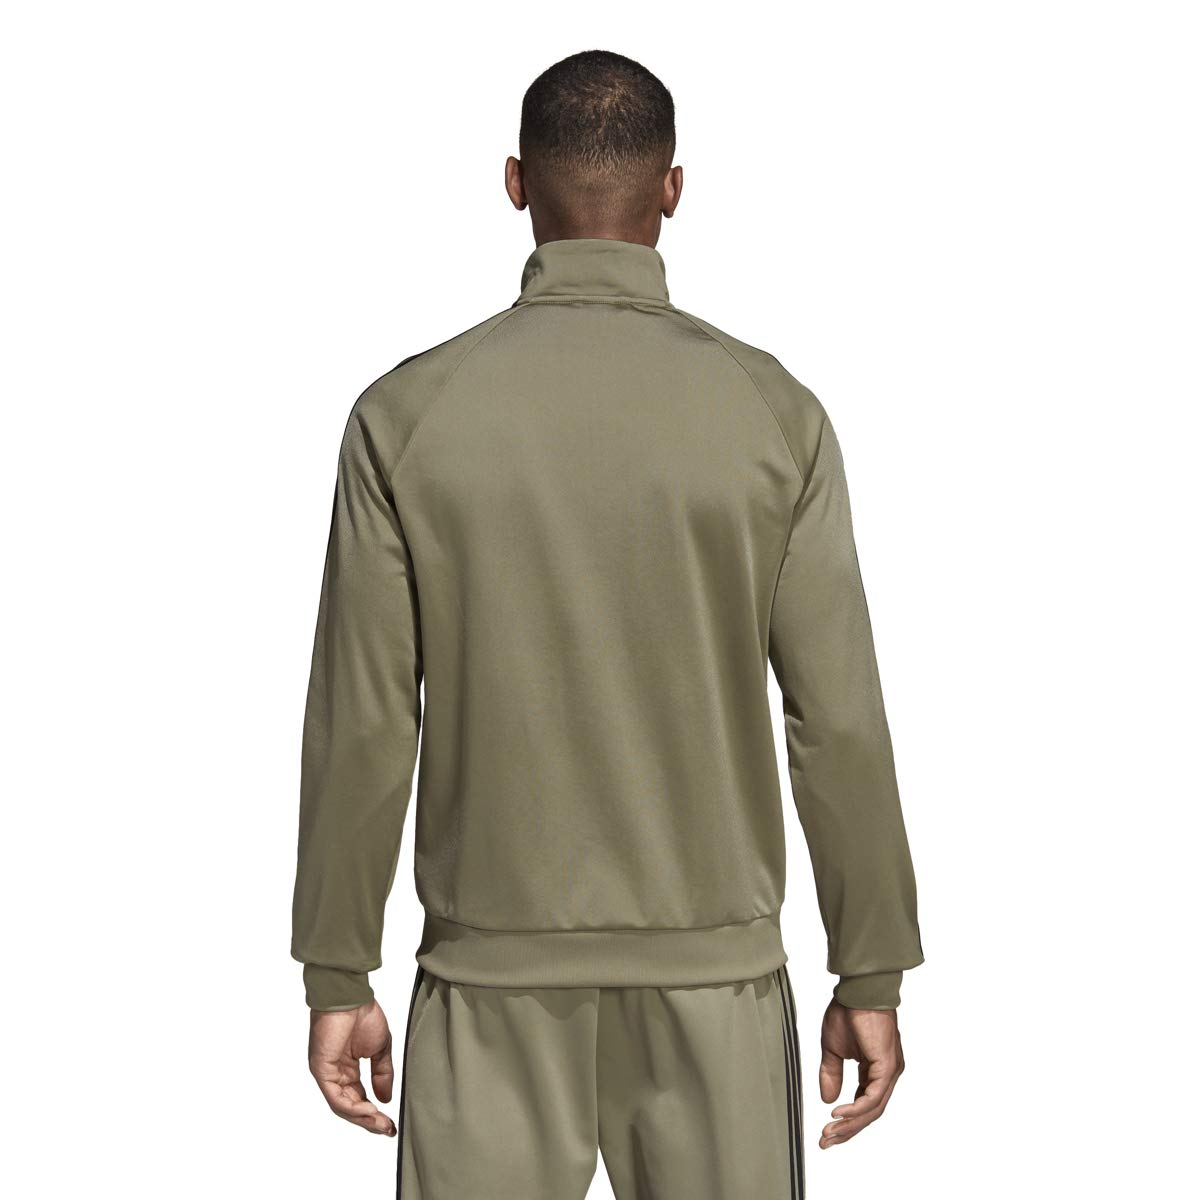 adidas Essentials 3S Tricot Track Jacket Men's All Sports M Trace Cargo by adidas (Image #2)